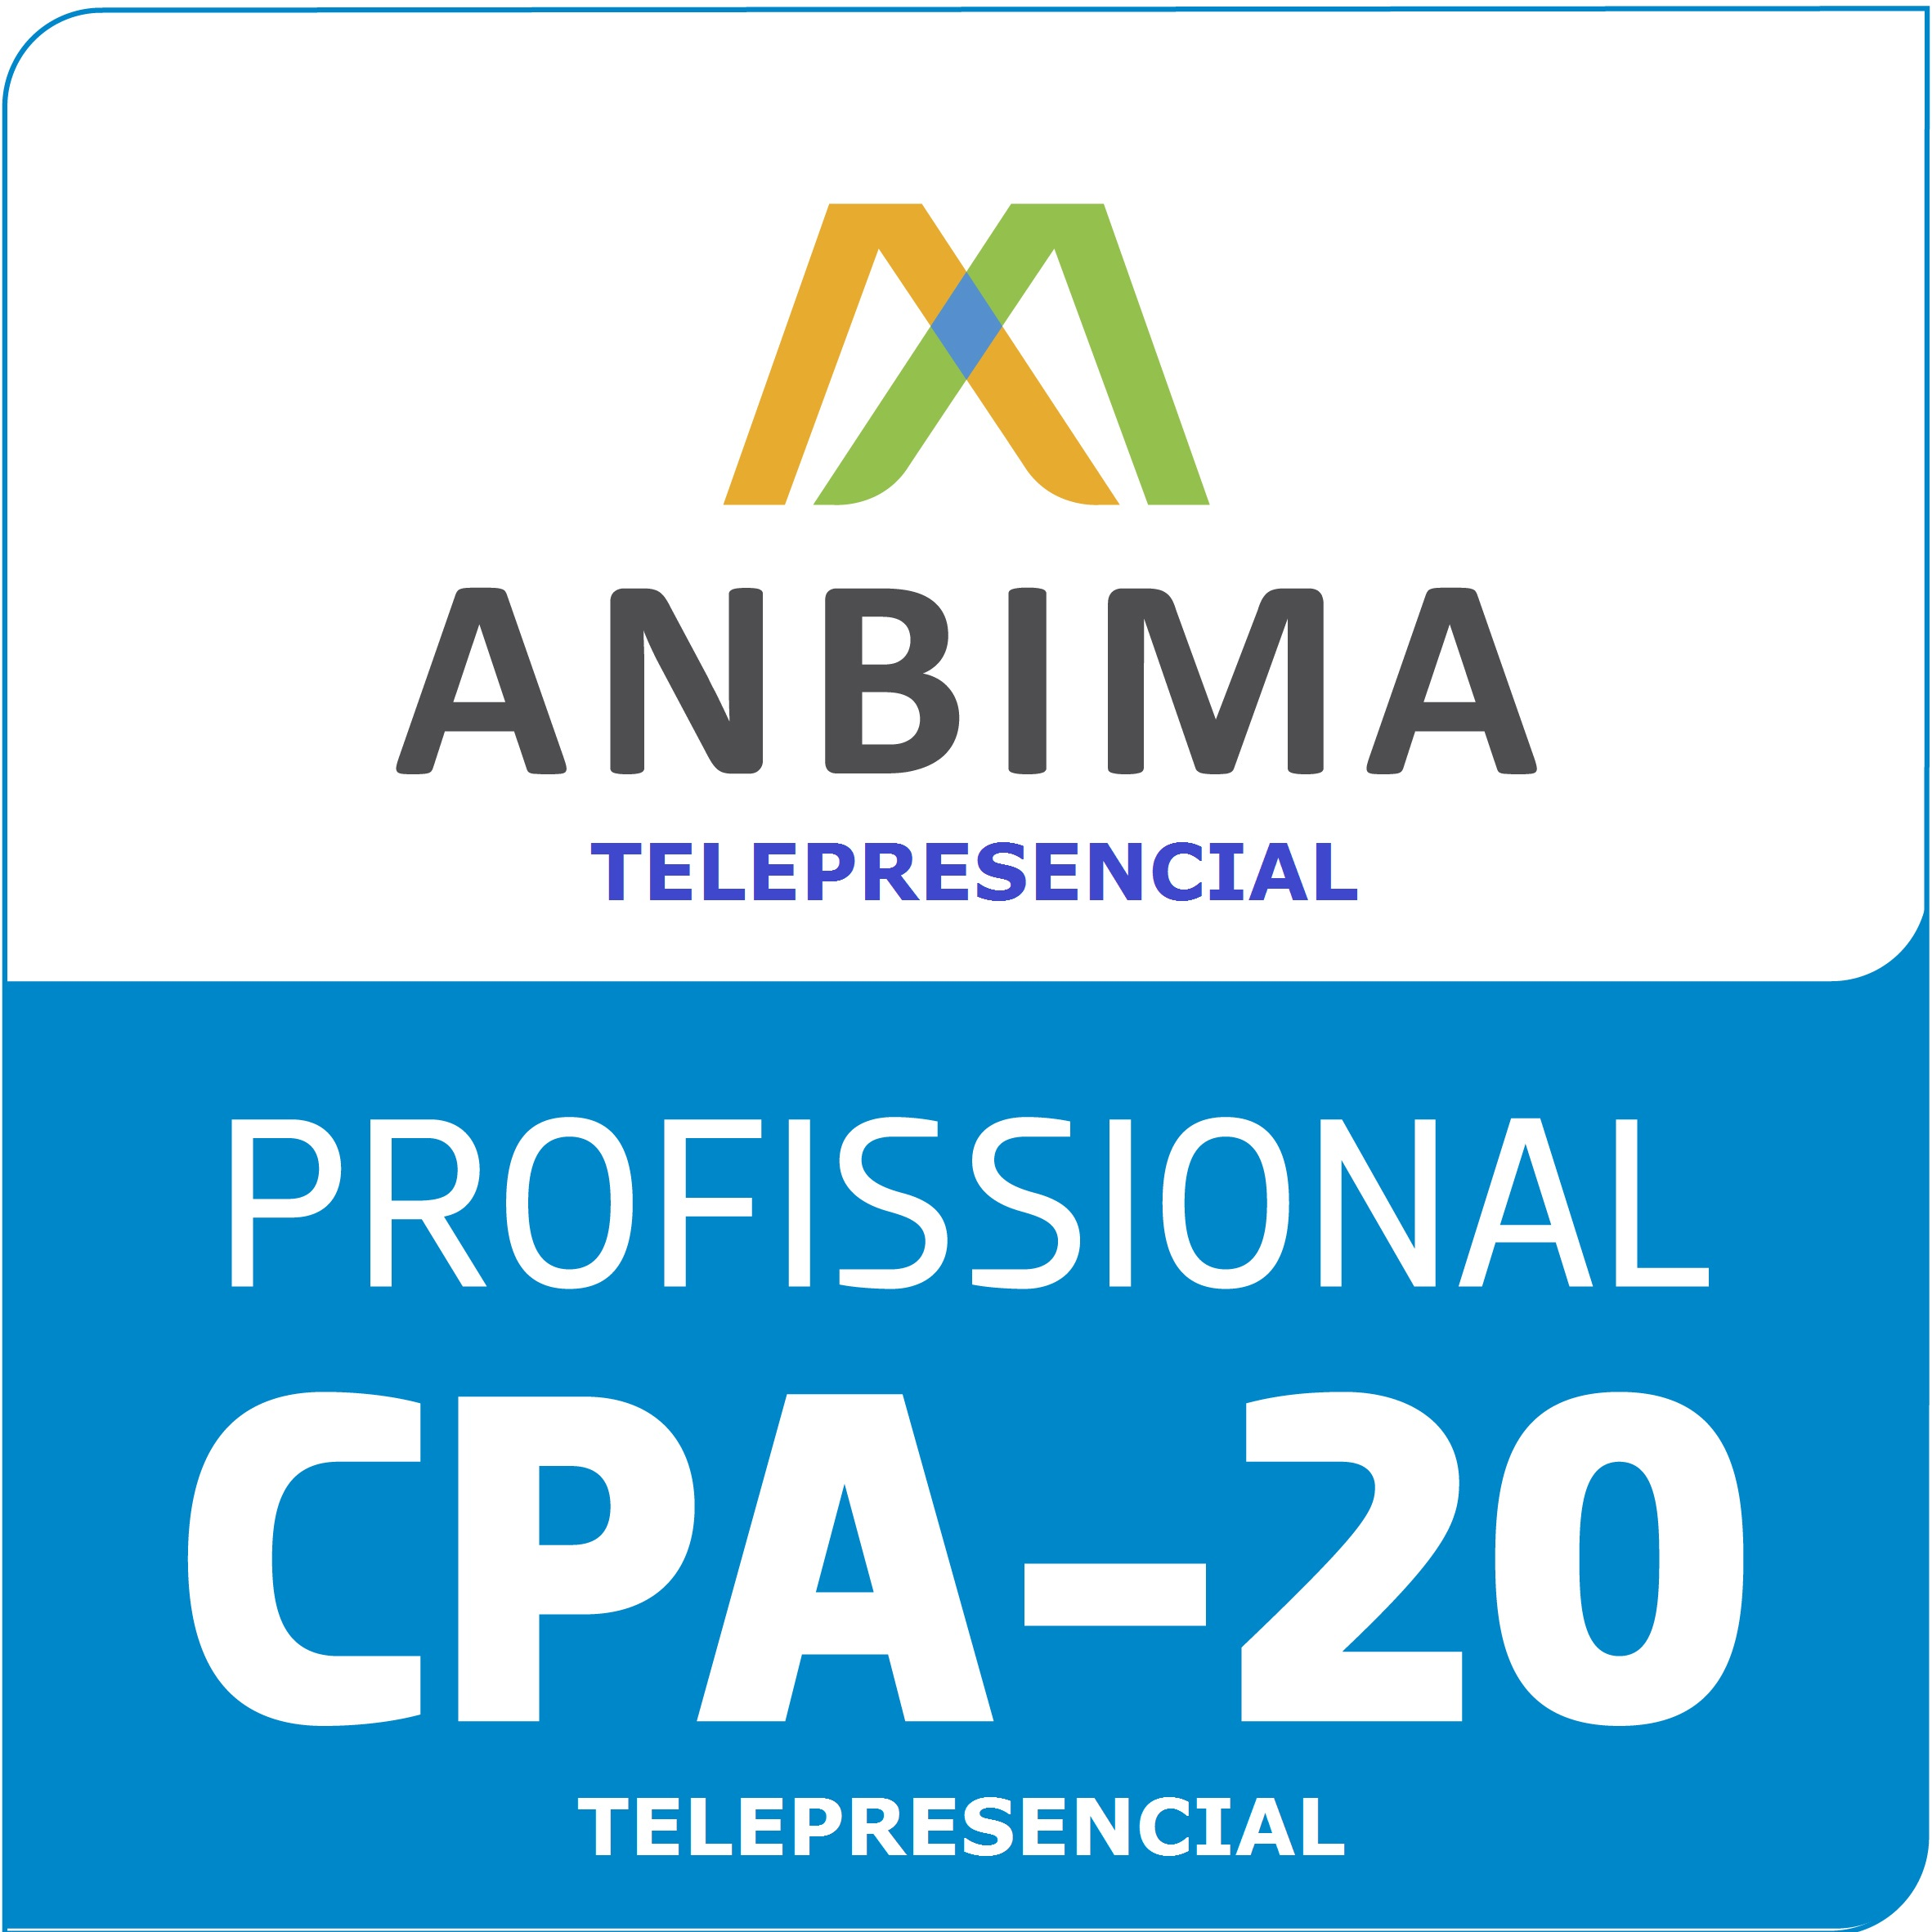 CPA20 TLE